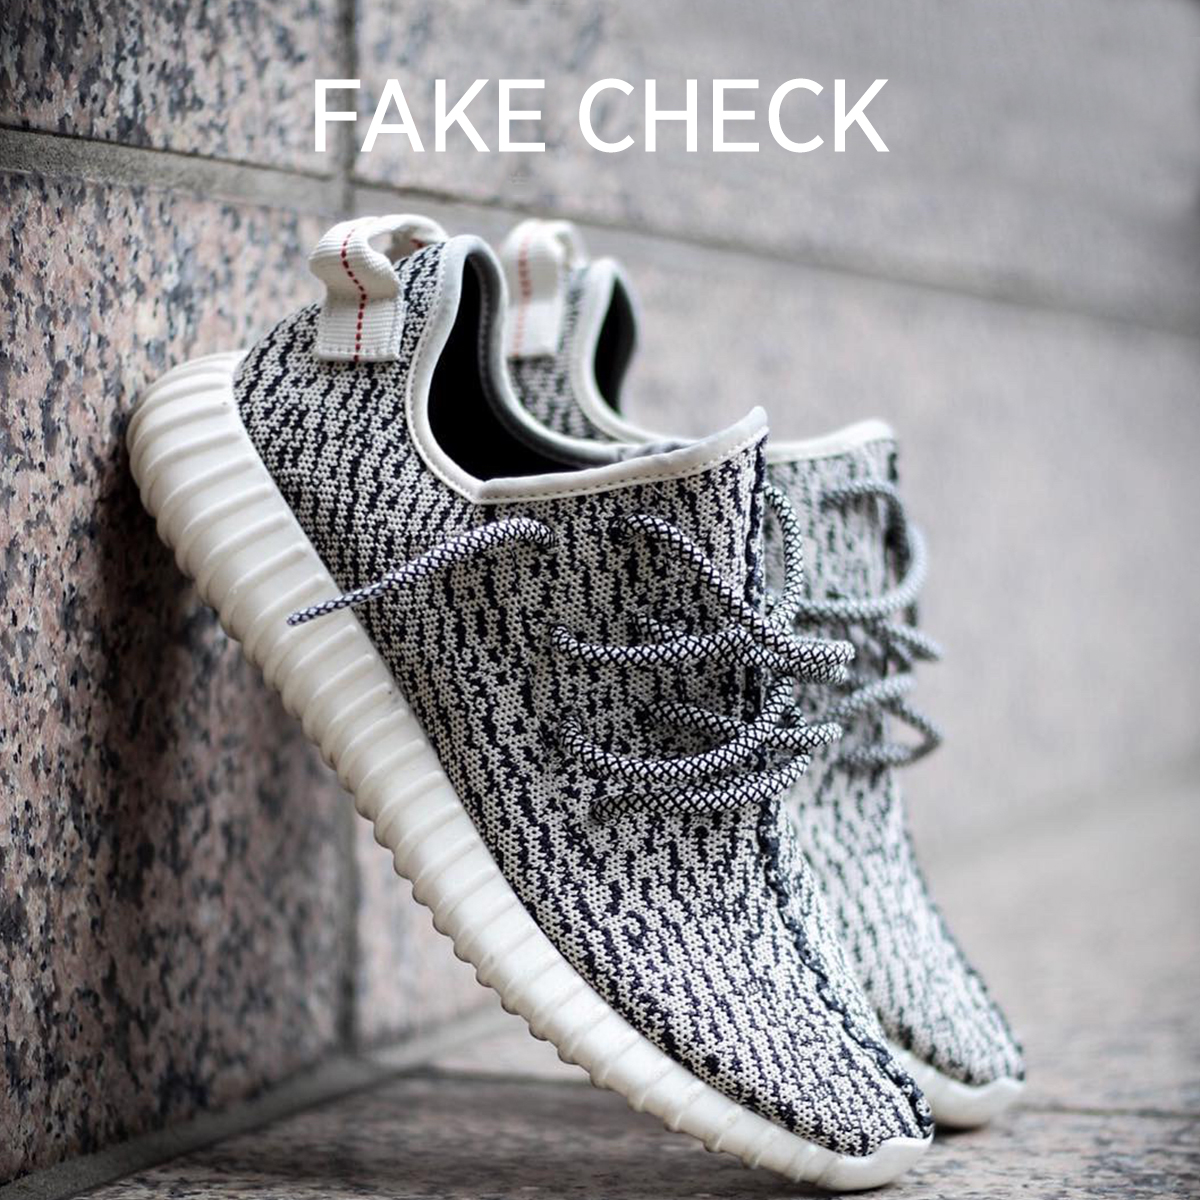 e7298e499b0 Adidas Originals Yeezy Boost 350 Turtle Dove Fake Check Klekt